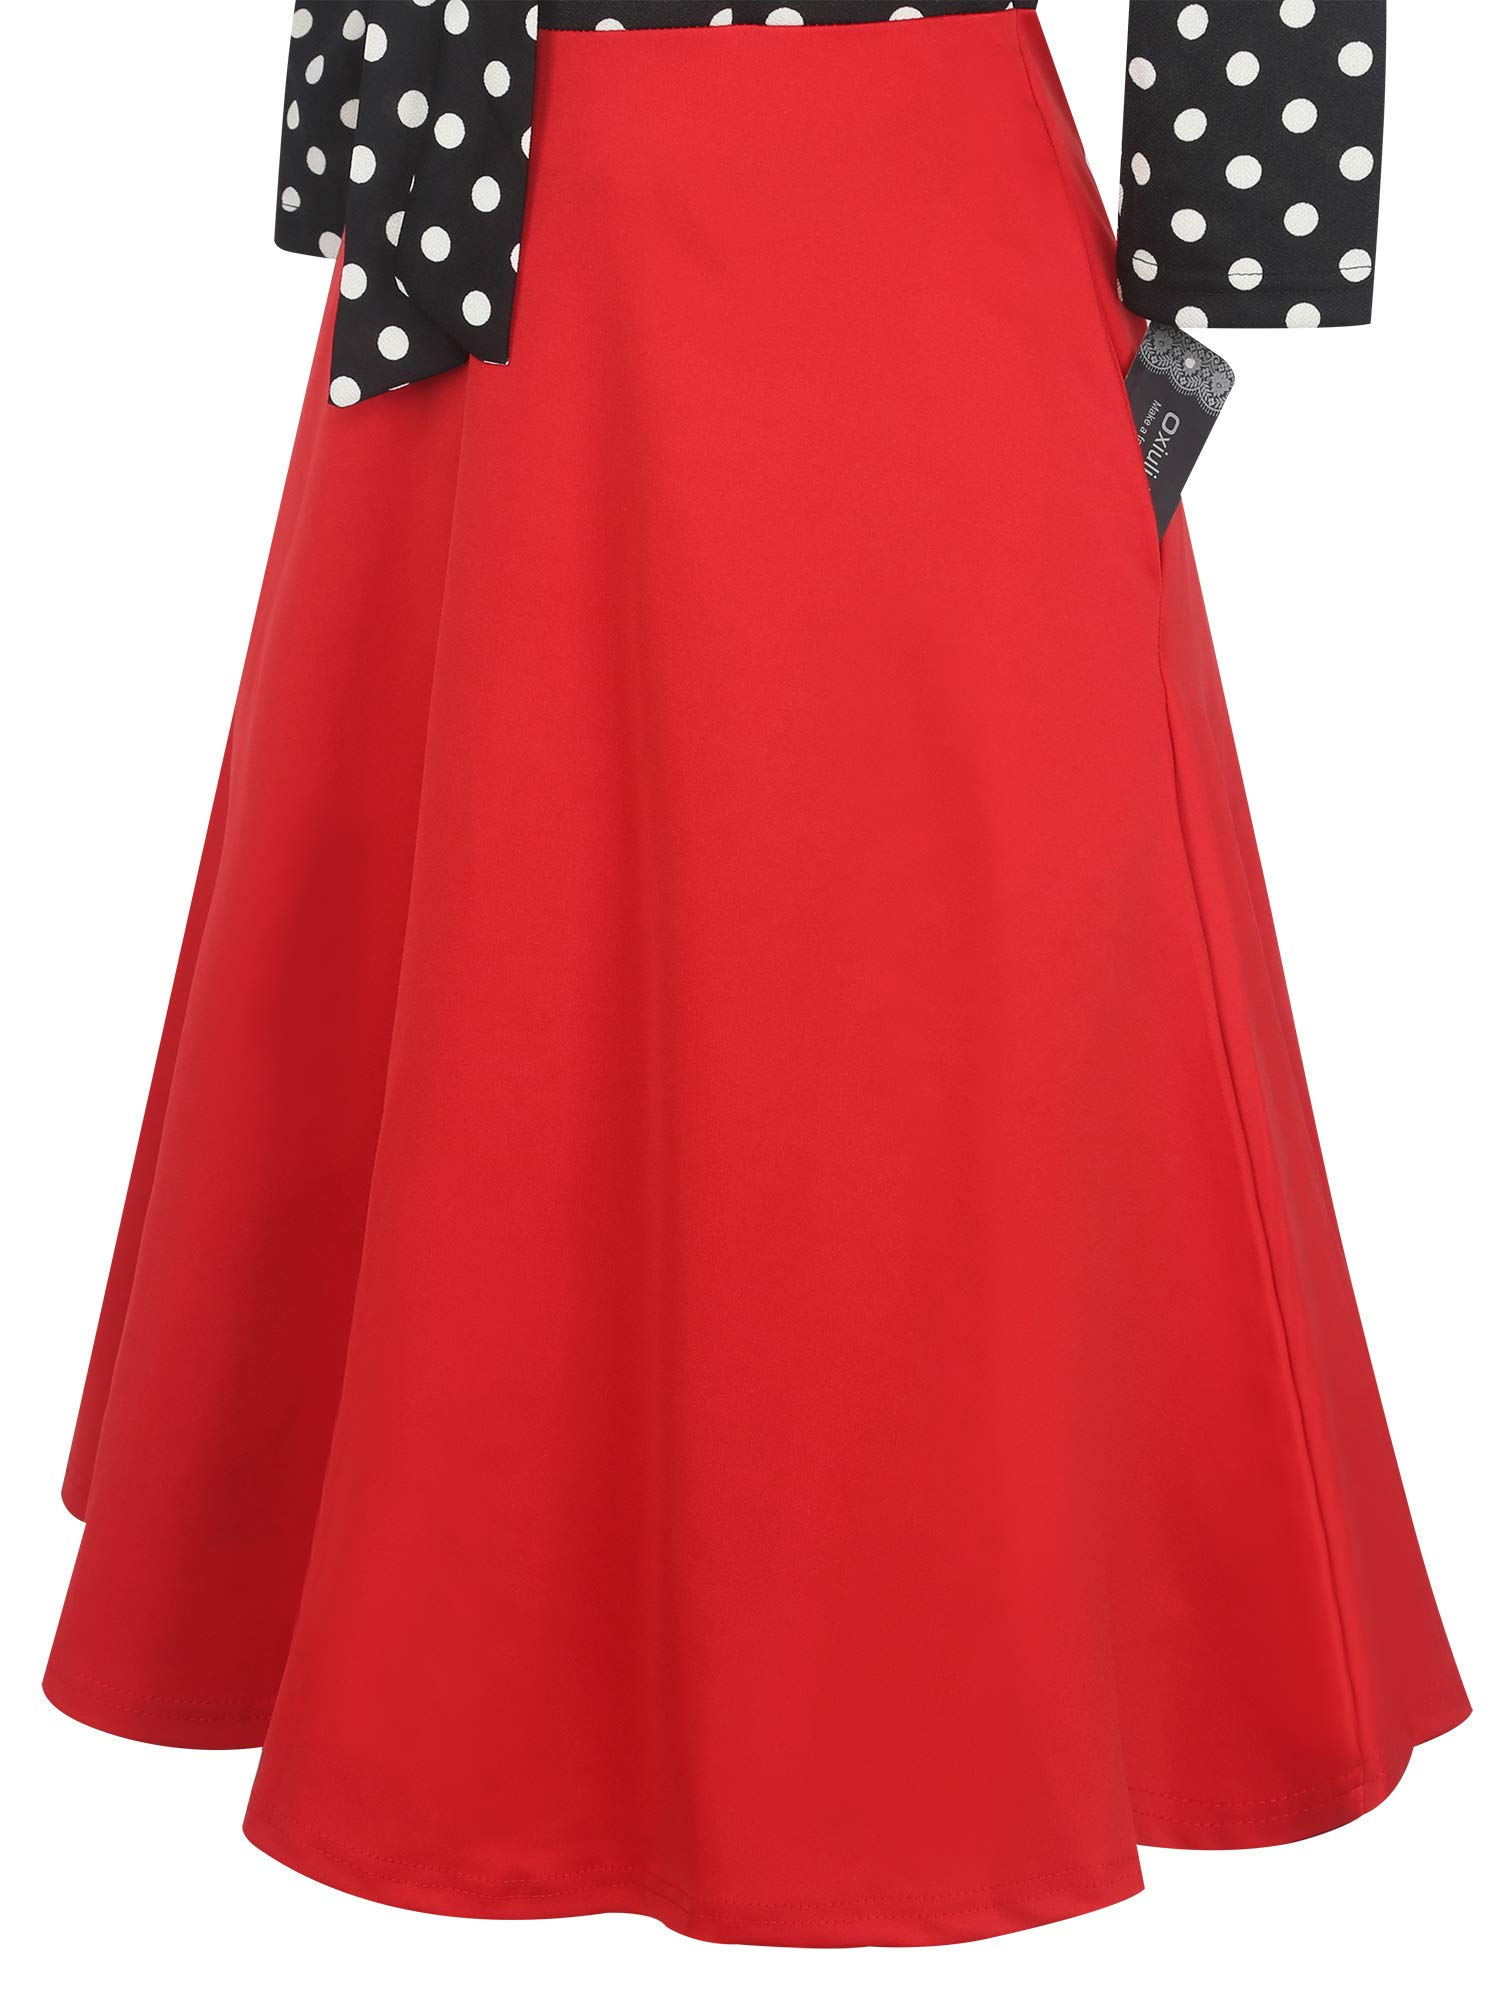 oxiuly-Womens-Vintage-Bow-Tie-V-Neck-Pockets-Casual-Work-Party-Cocktail-Swing-A-line-Dresses-OX278